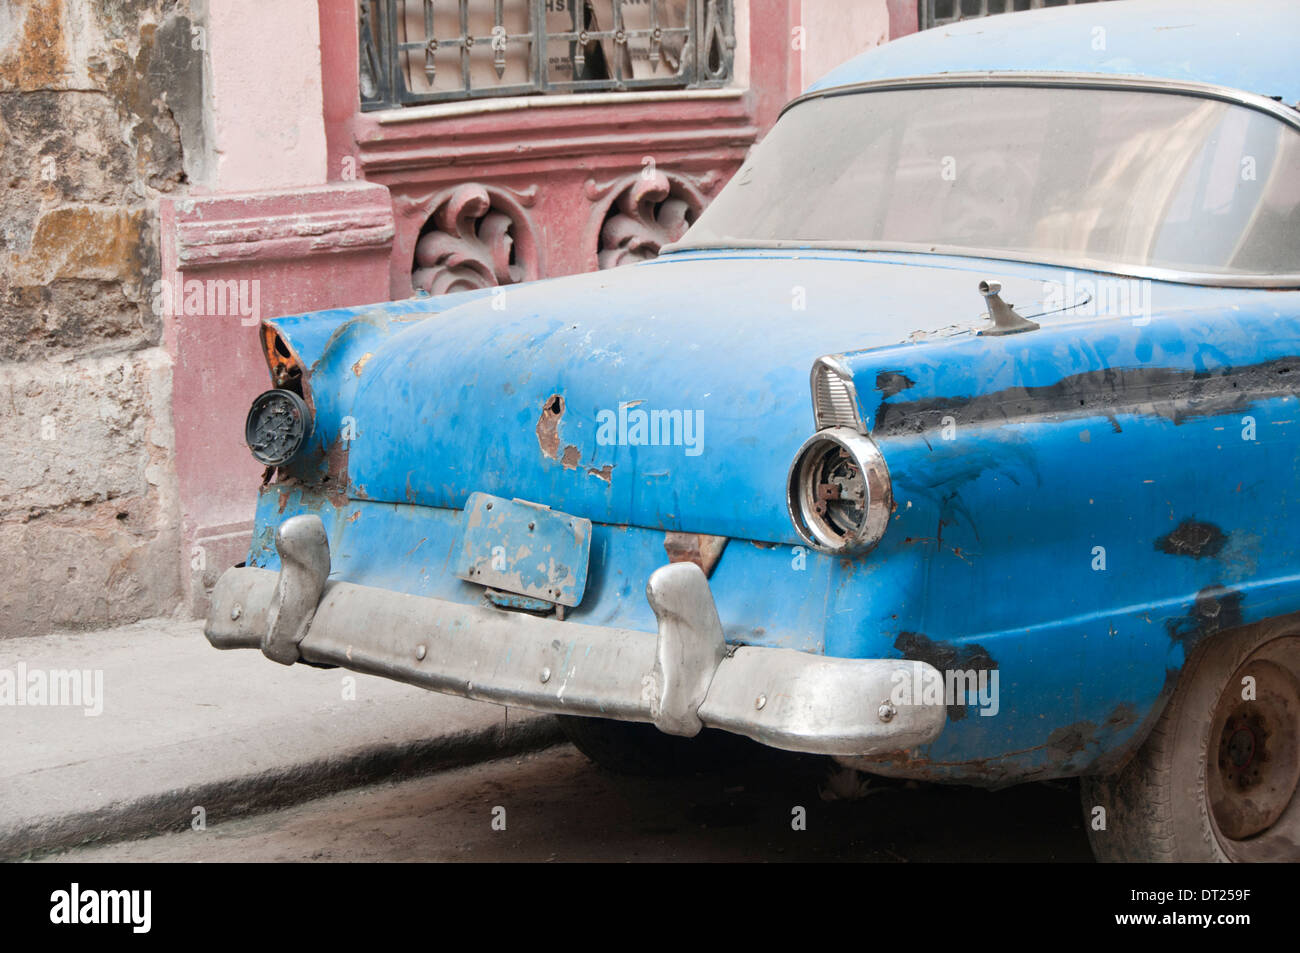 Old American Car in poor condition, Calle Brazil, Habana Vieja, Havana, Cuba, Caribbean - Stock Image